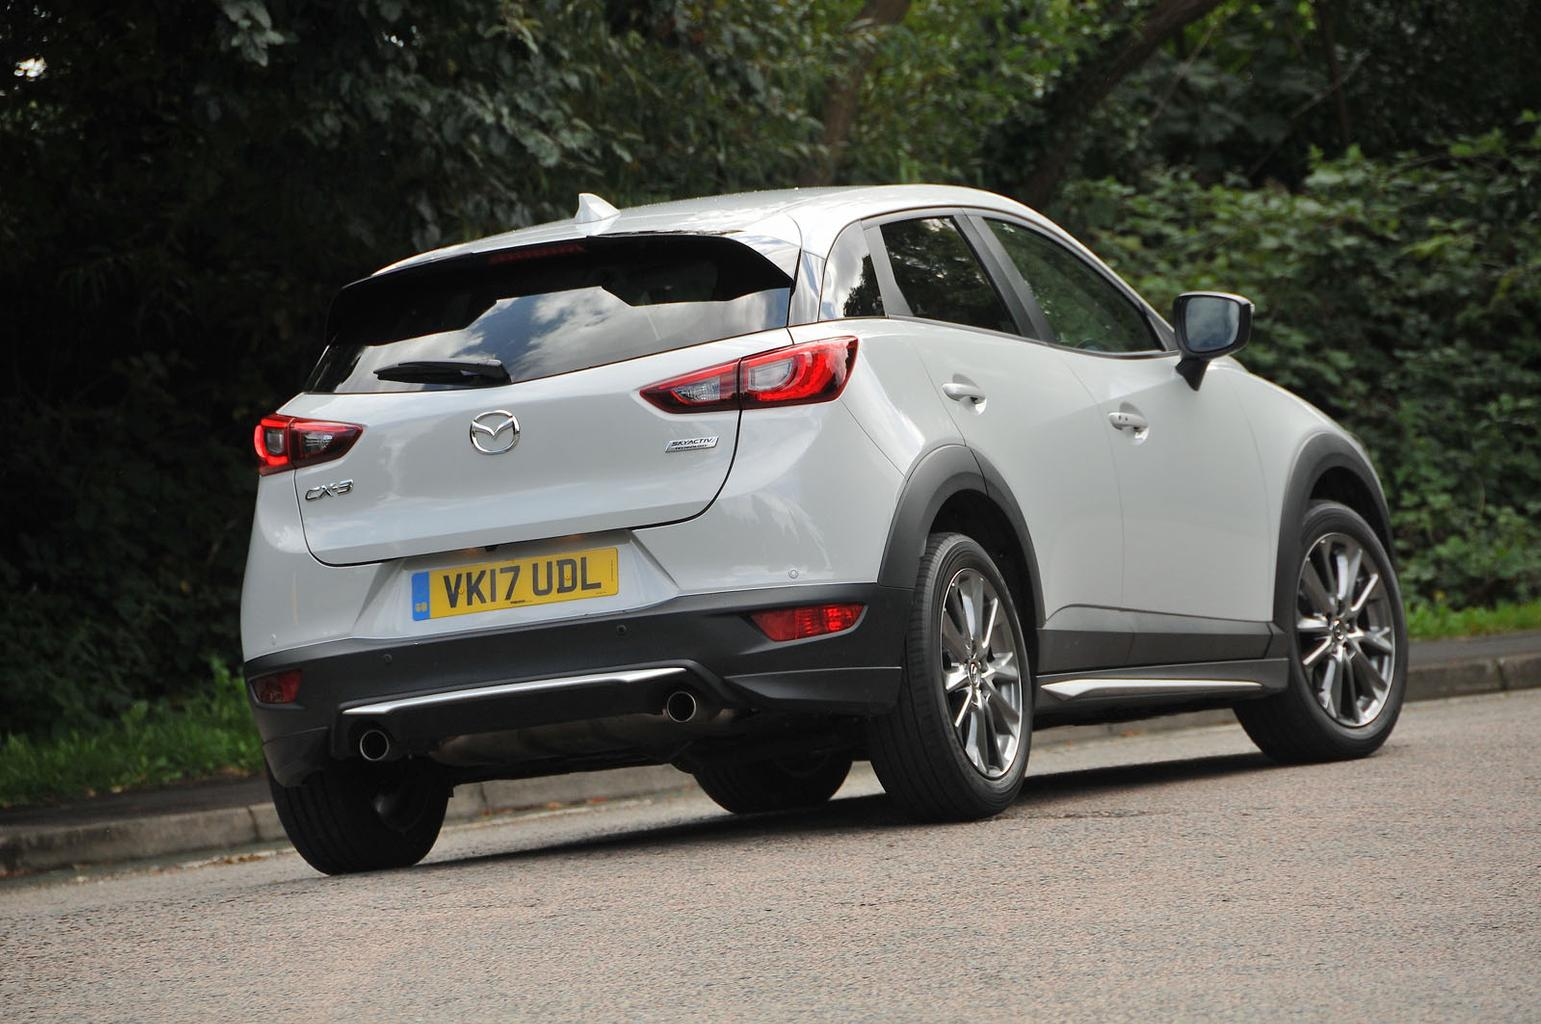 2017 Mazda CX-3 2.0 Skyativ-G 120 GT Sport review - price, specs and release date